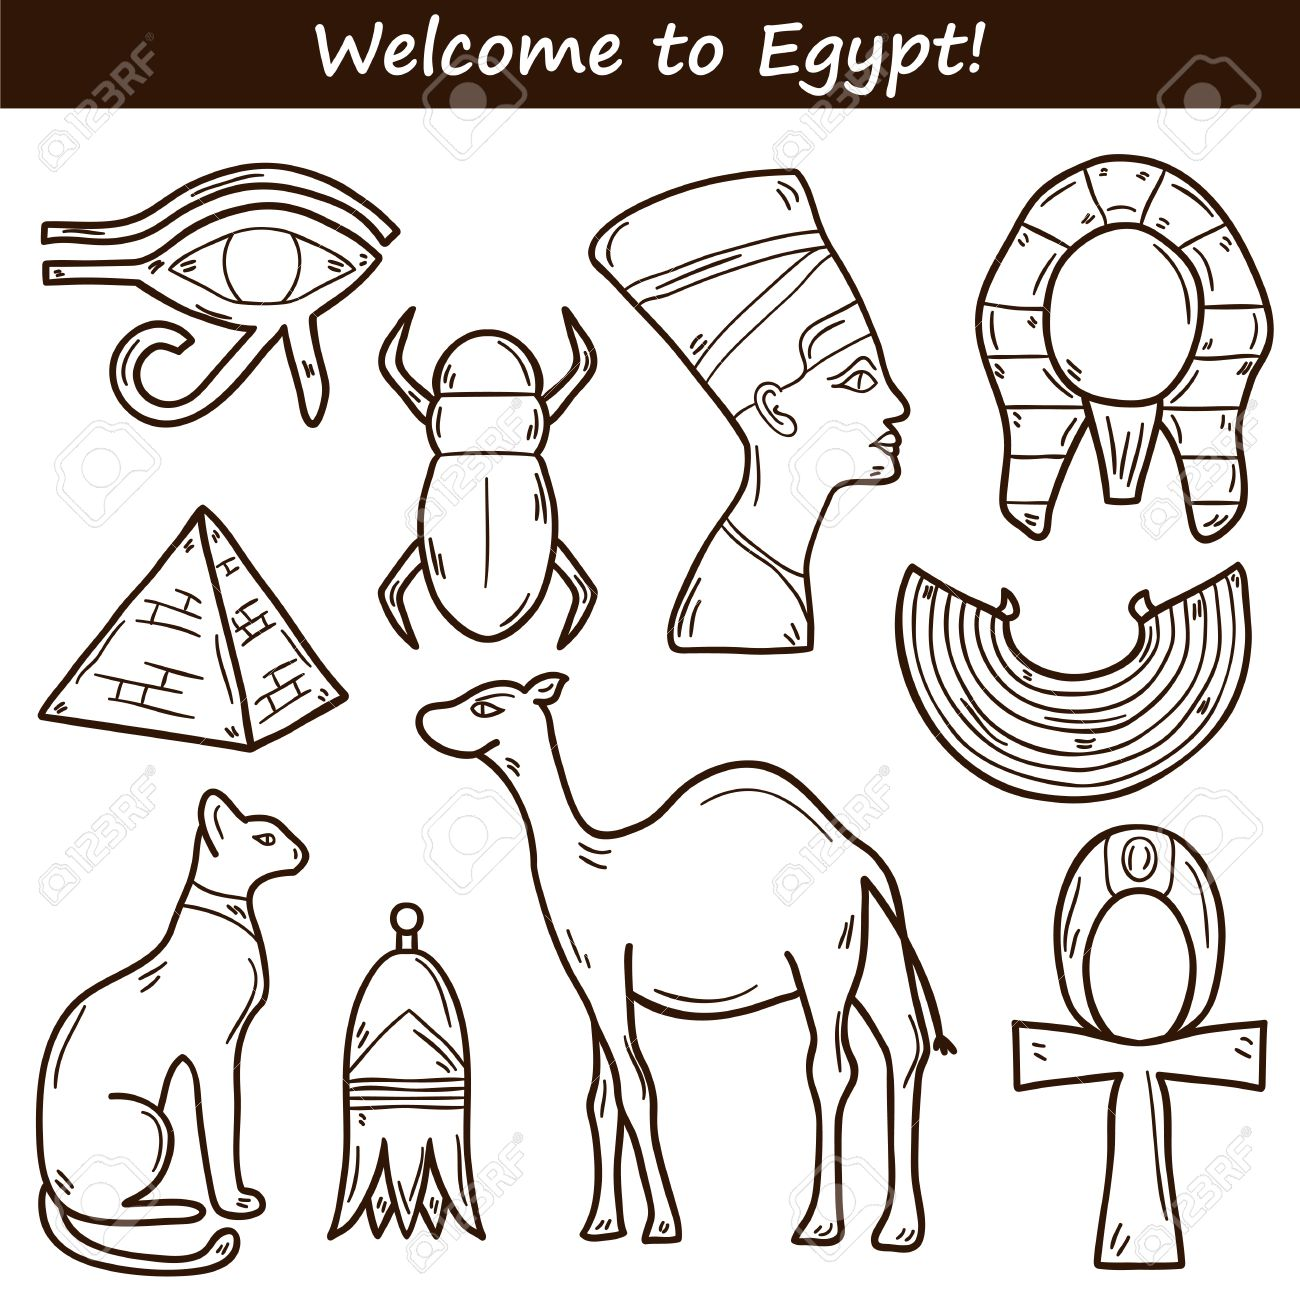 Egyptian Pyramids Drawing At Getdrawings